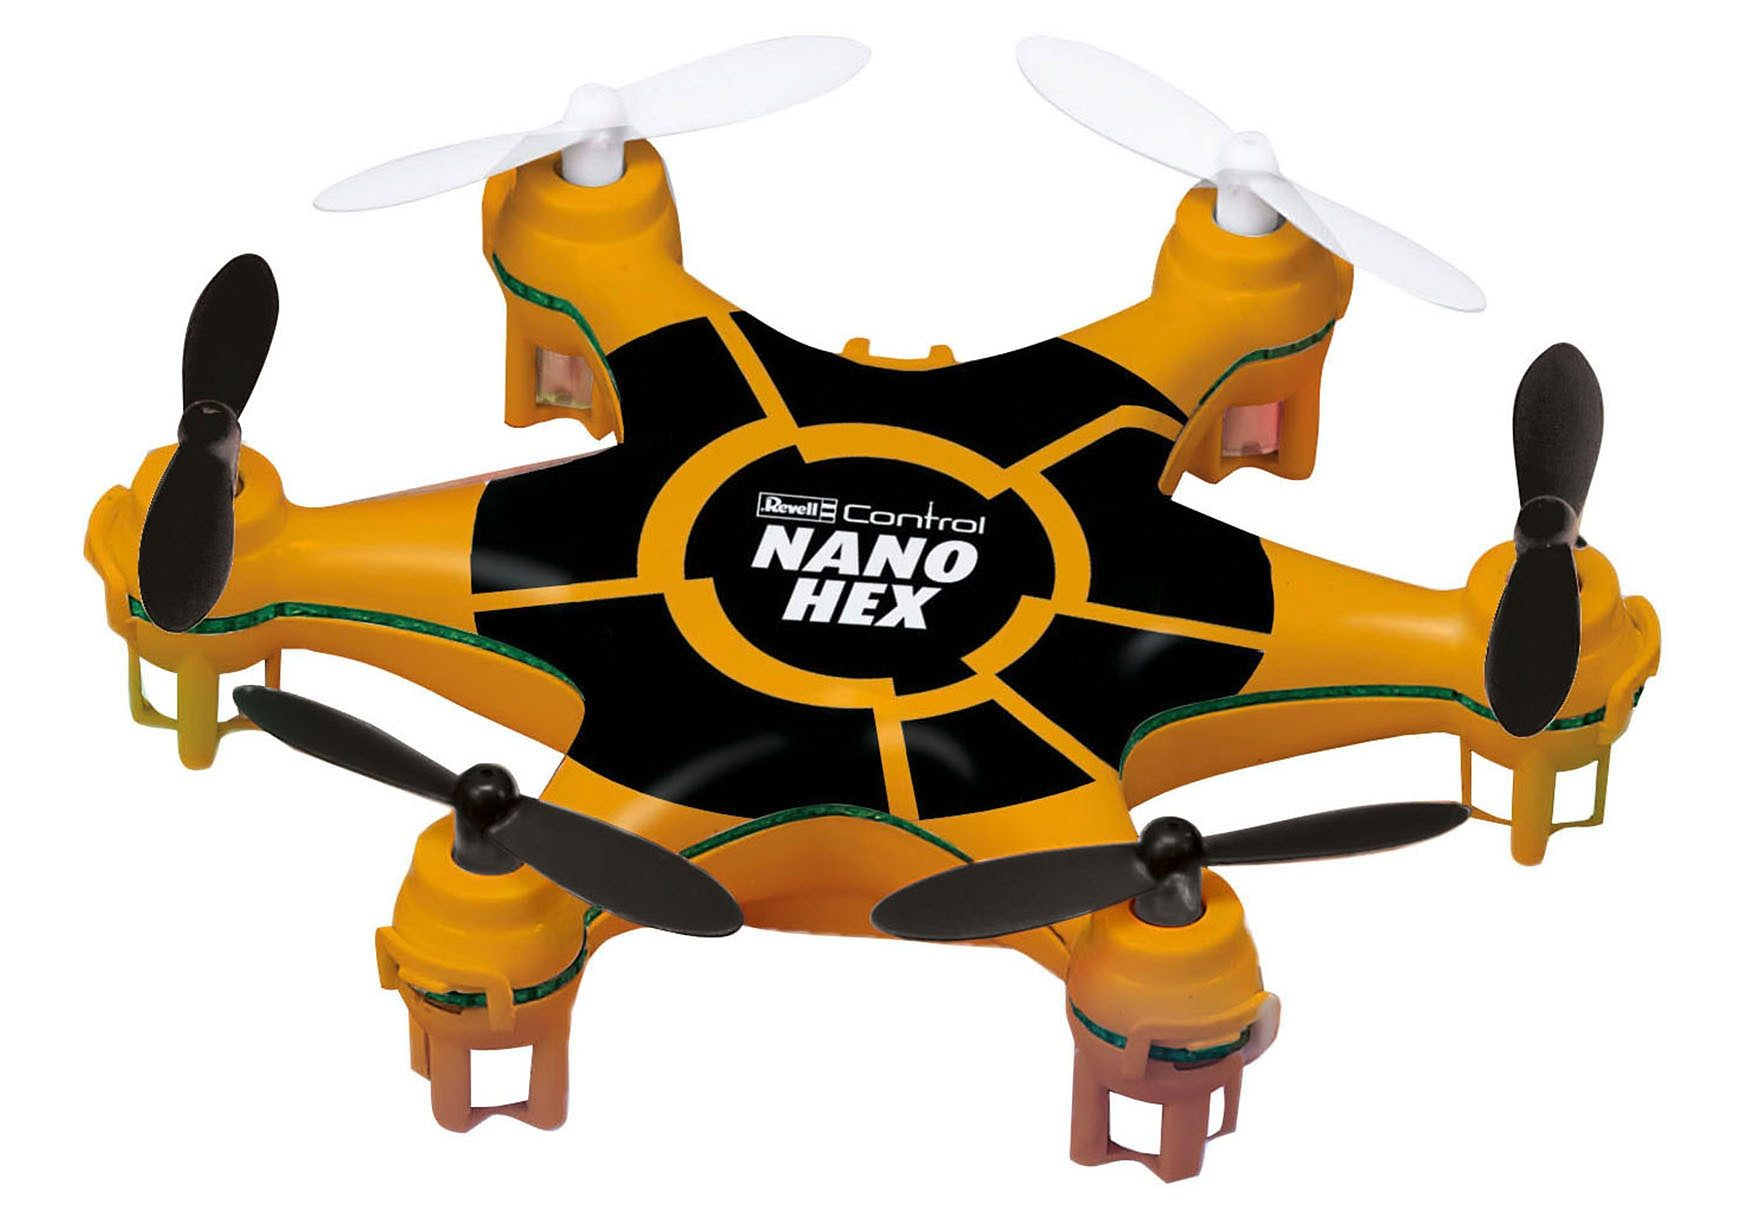 Revell® RC Hexacopter »Revell® Control Multicopter, Nano Hex«